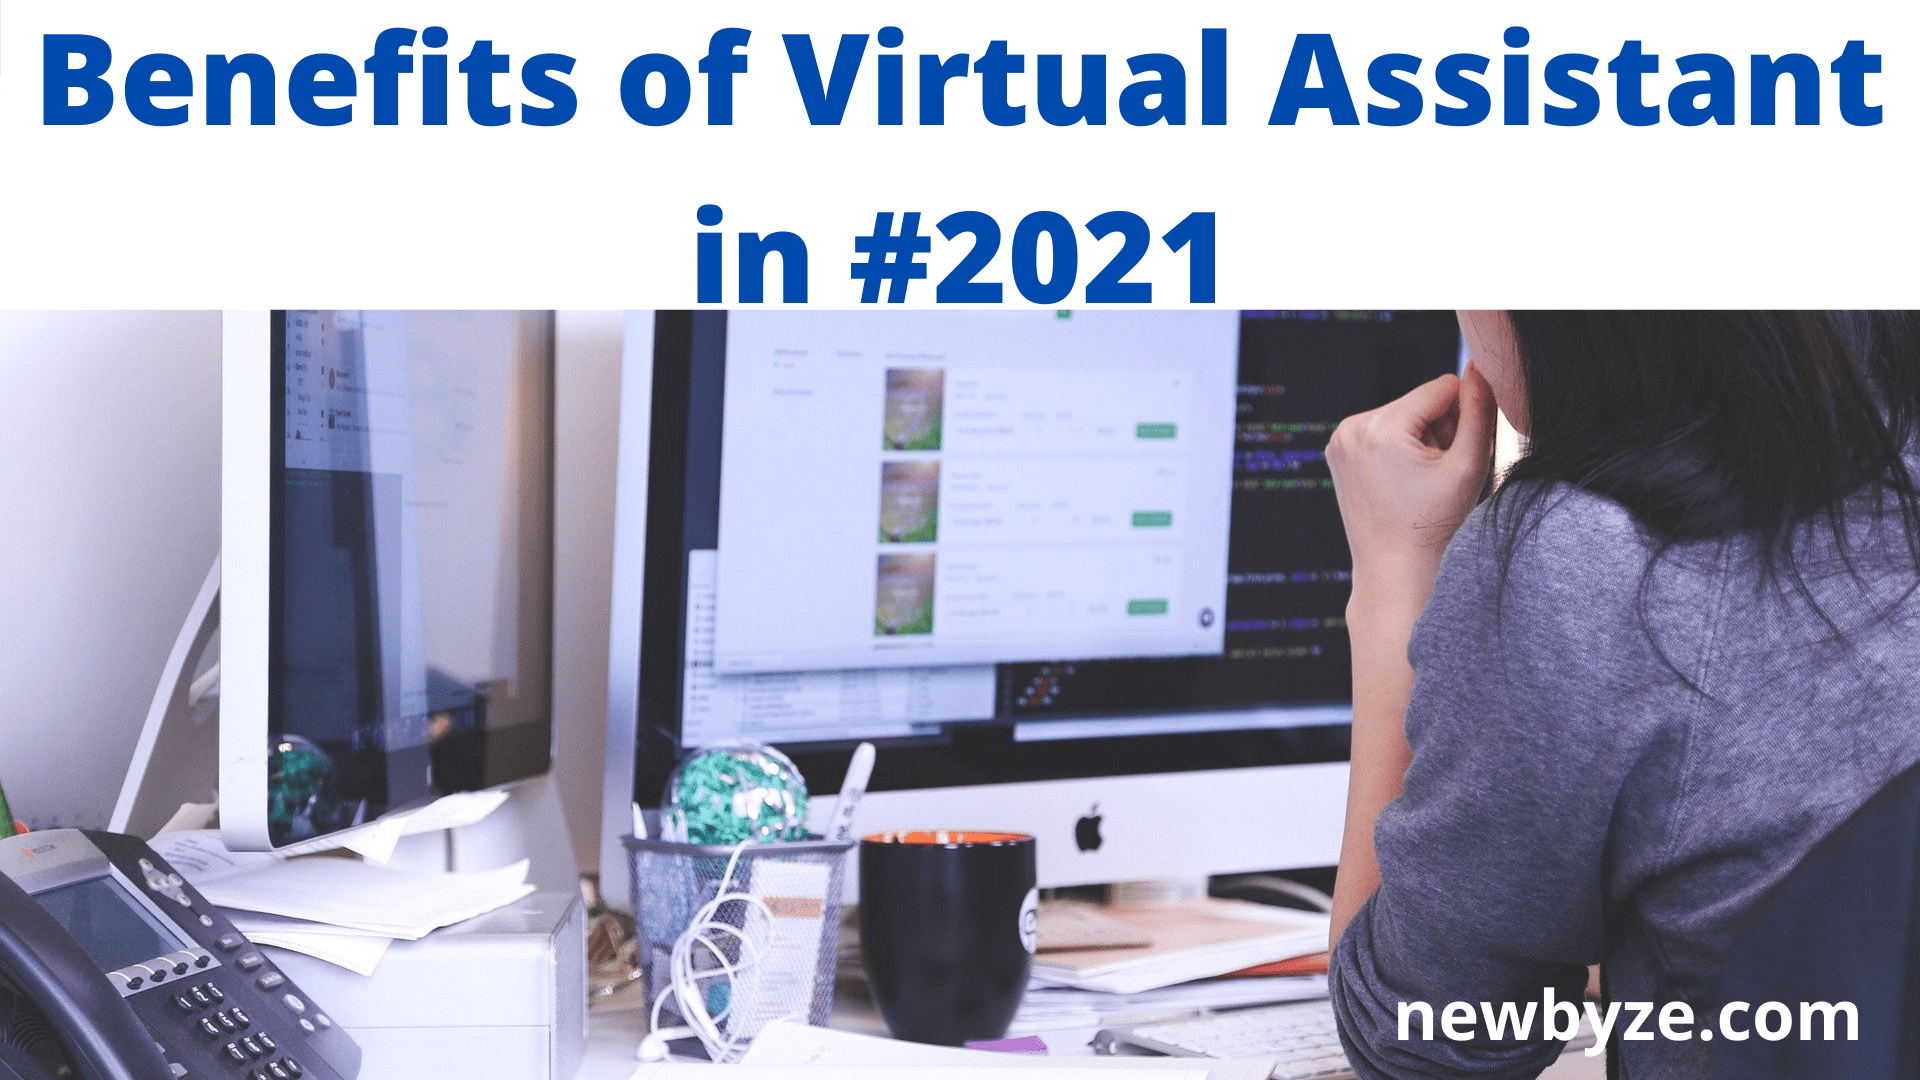 Benefits of Virtual Assistants